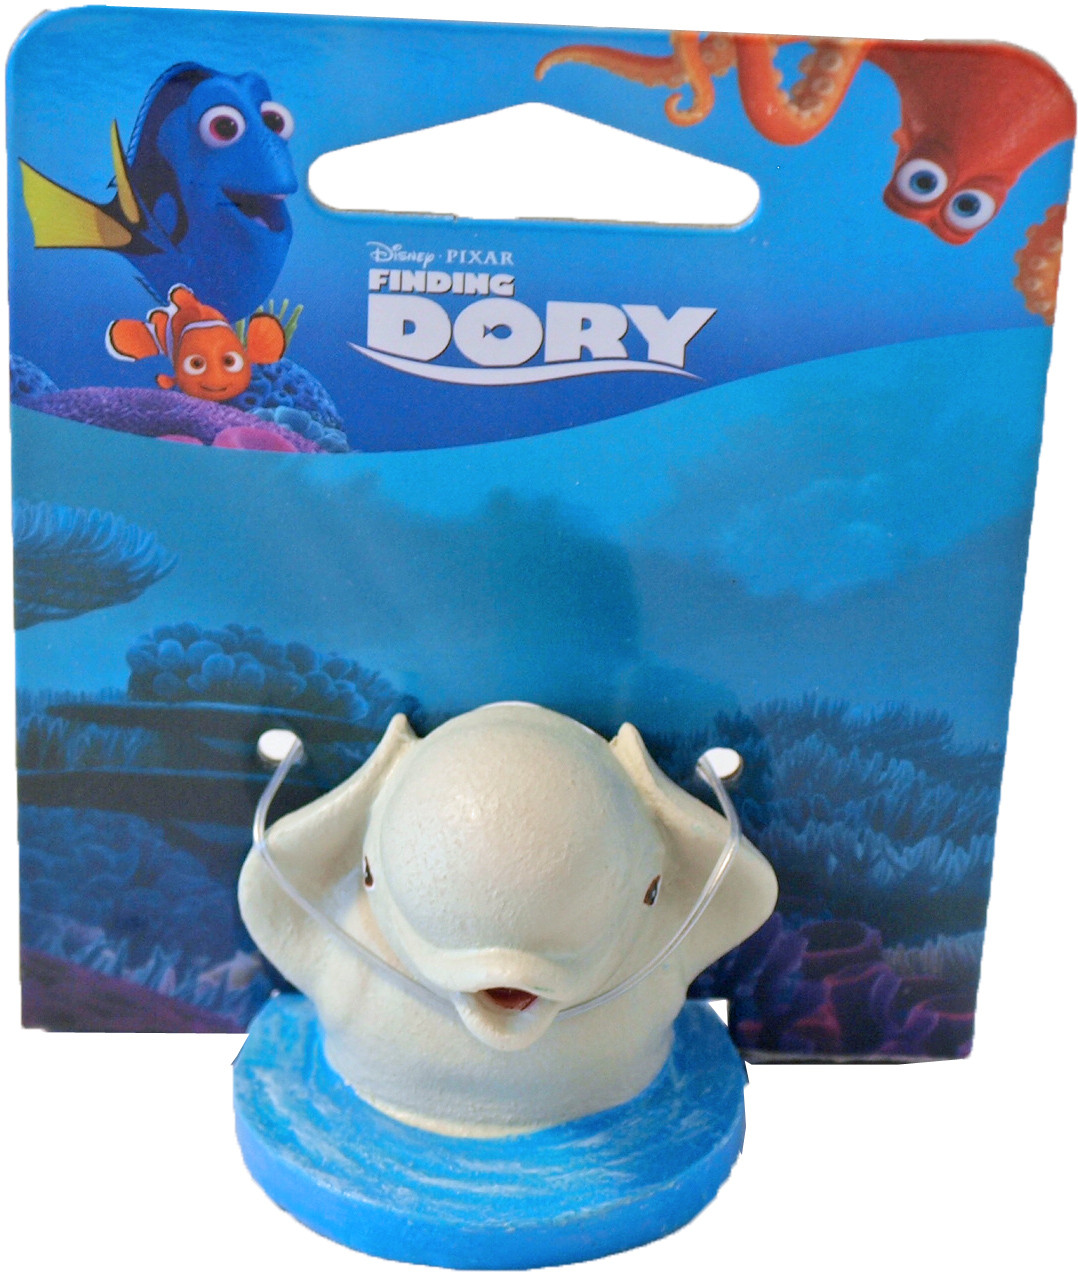 Penn Plax Dory ornament mini Baily in water